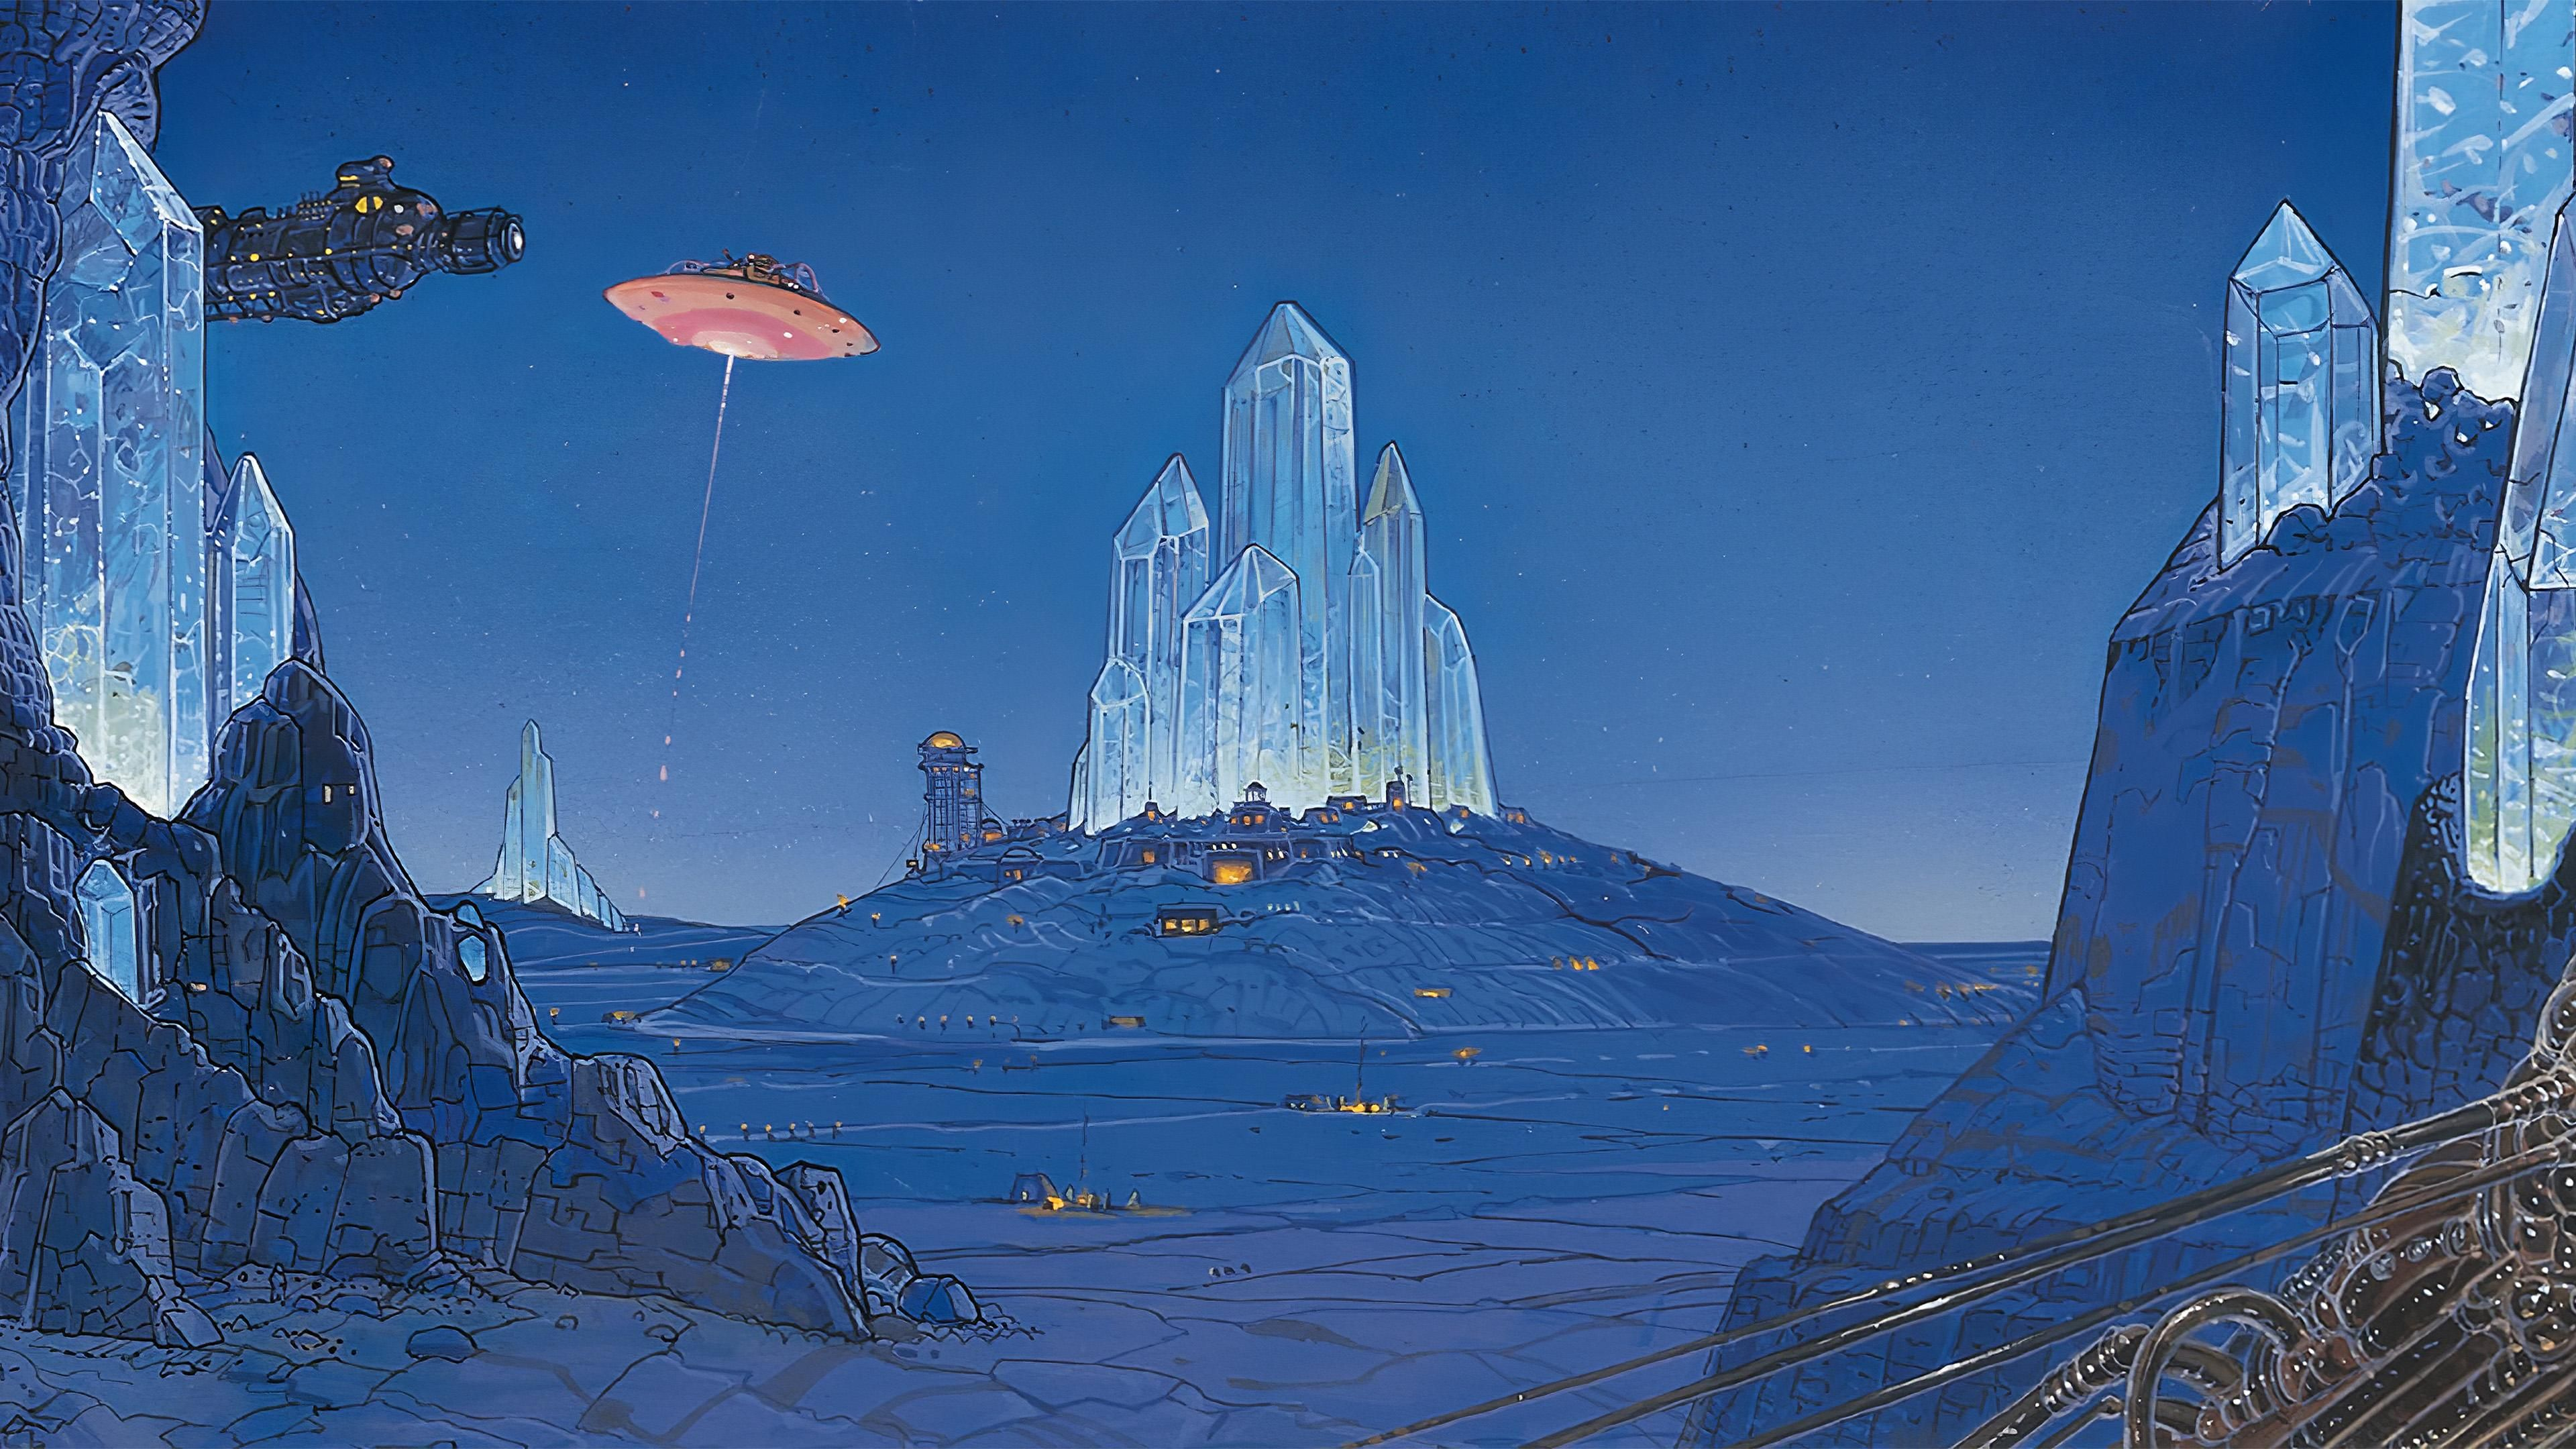 Crystal Shards by Moebius [3840x2160] Great artists